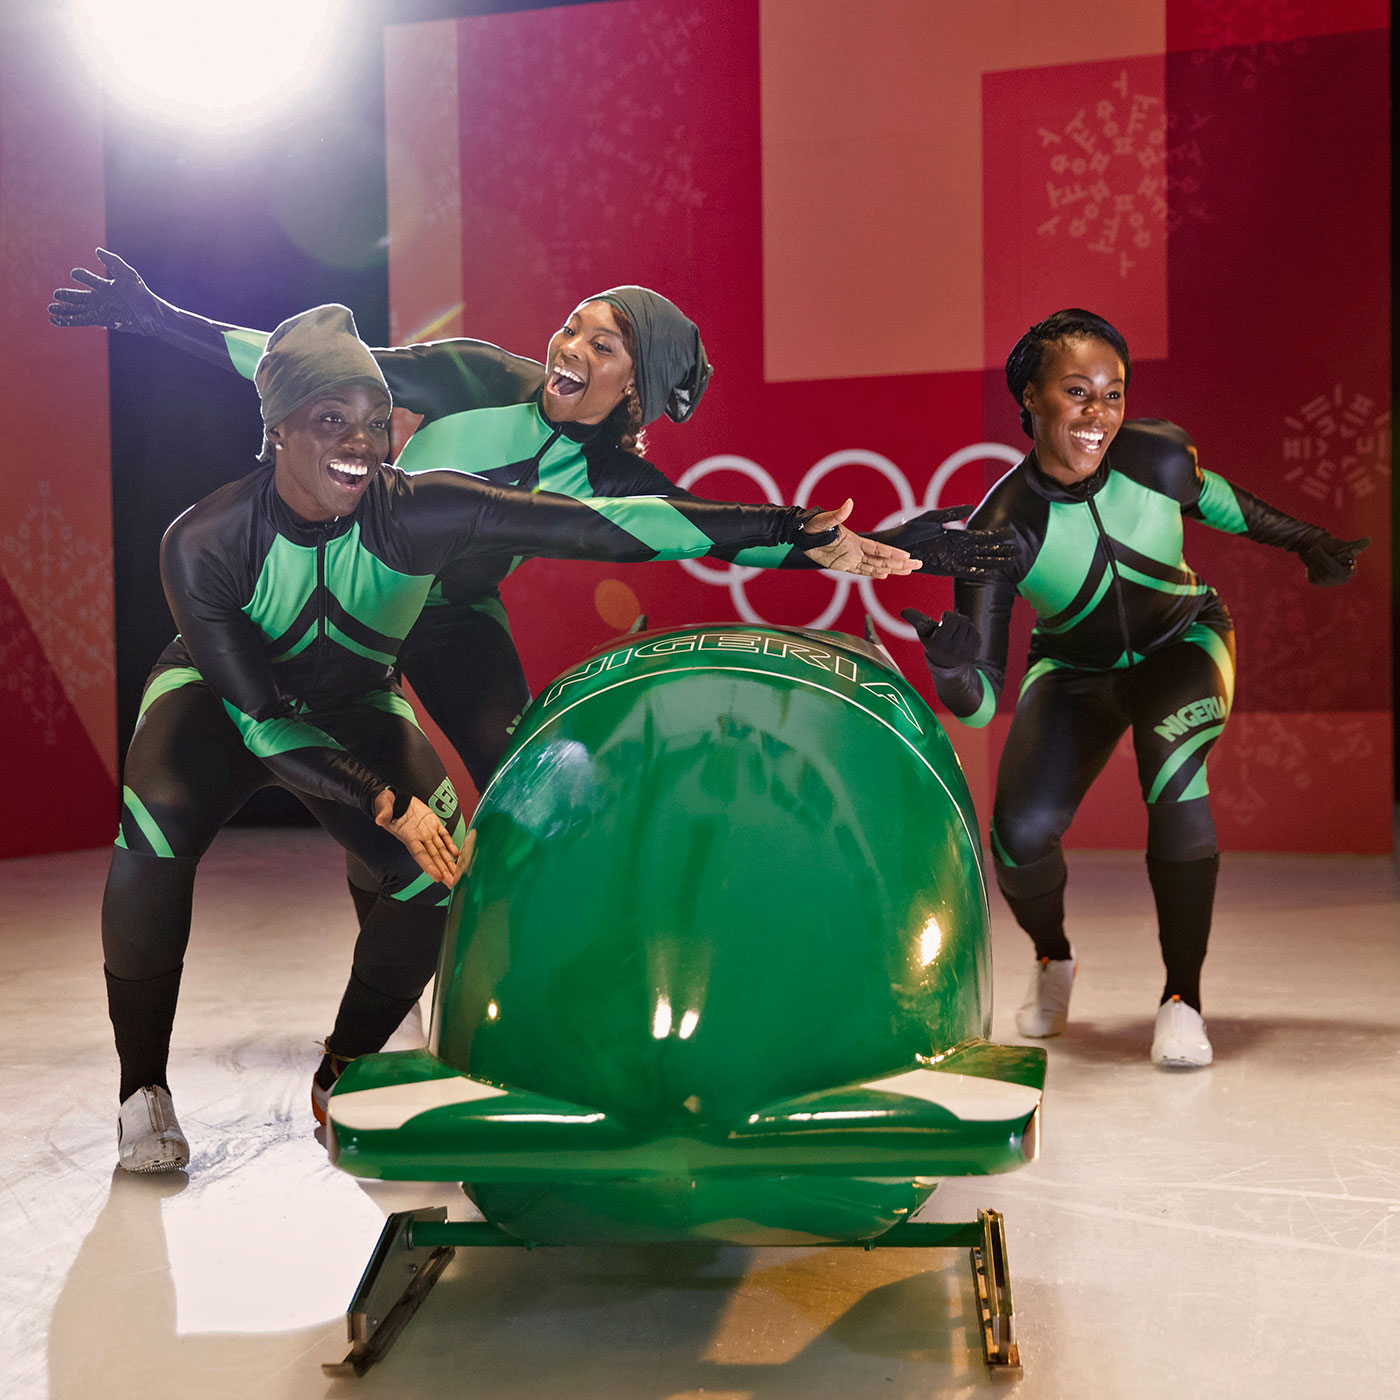 These women will bobsled for Nigeria in the 2018 Winter Olympics